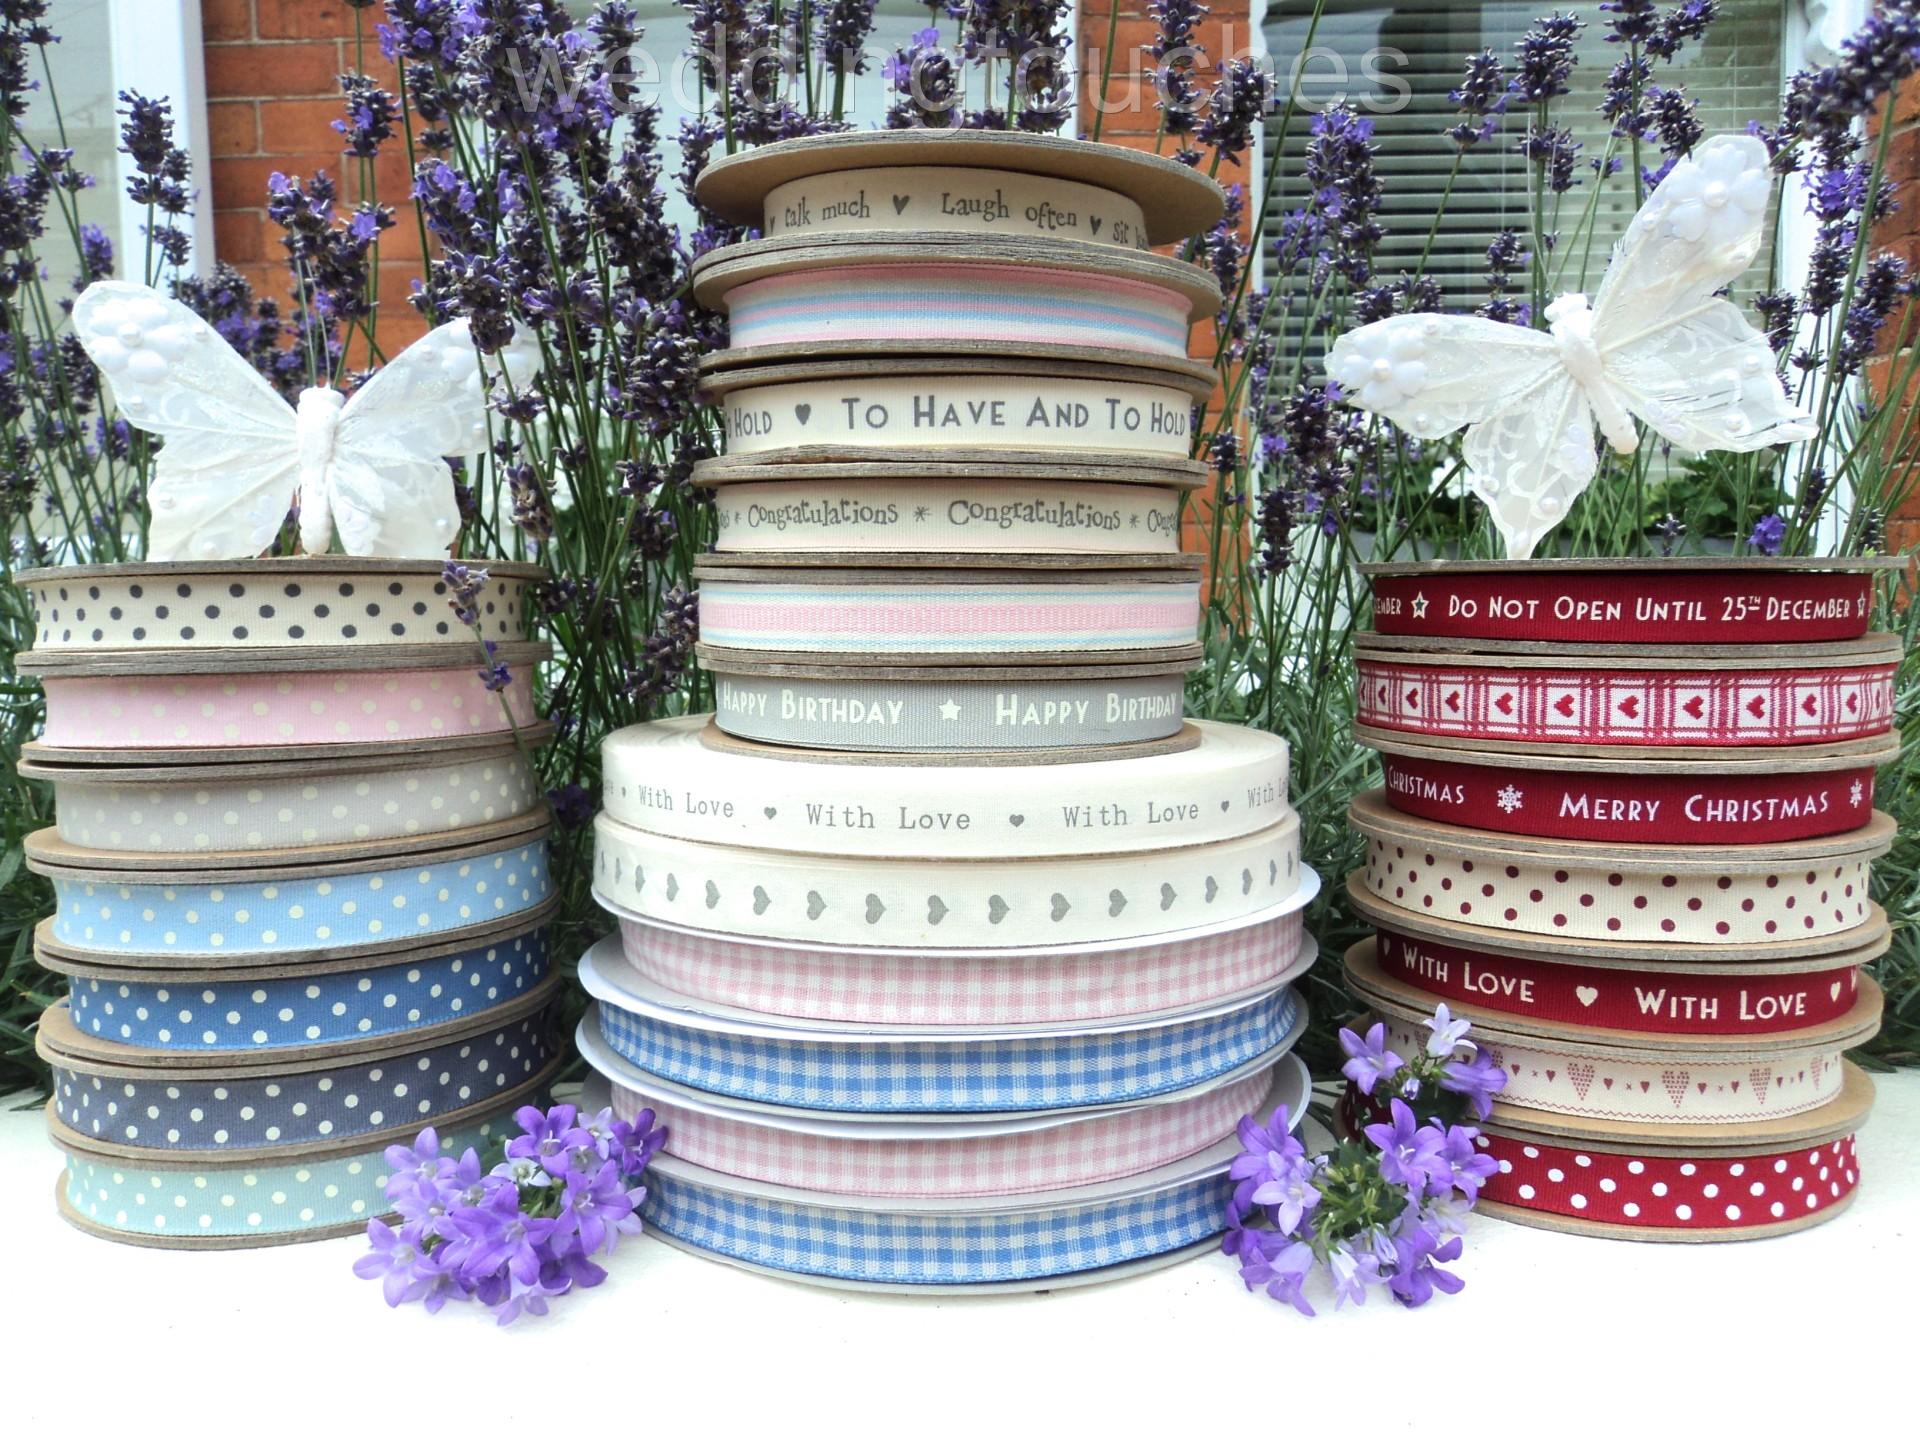 Indian Wedding Gift Baskets Uk : ... Occasions > Gift Wrapping & Supplies > Other Gift Wrapping &...